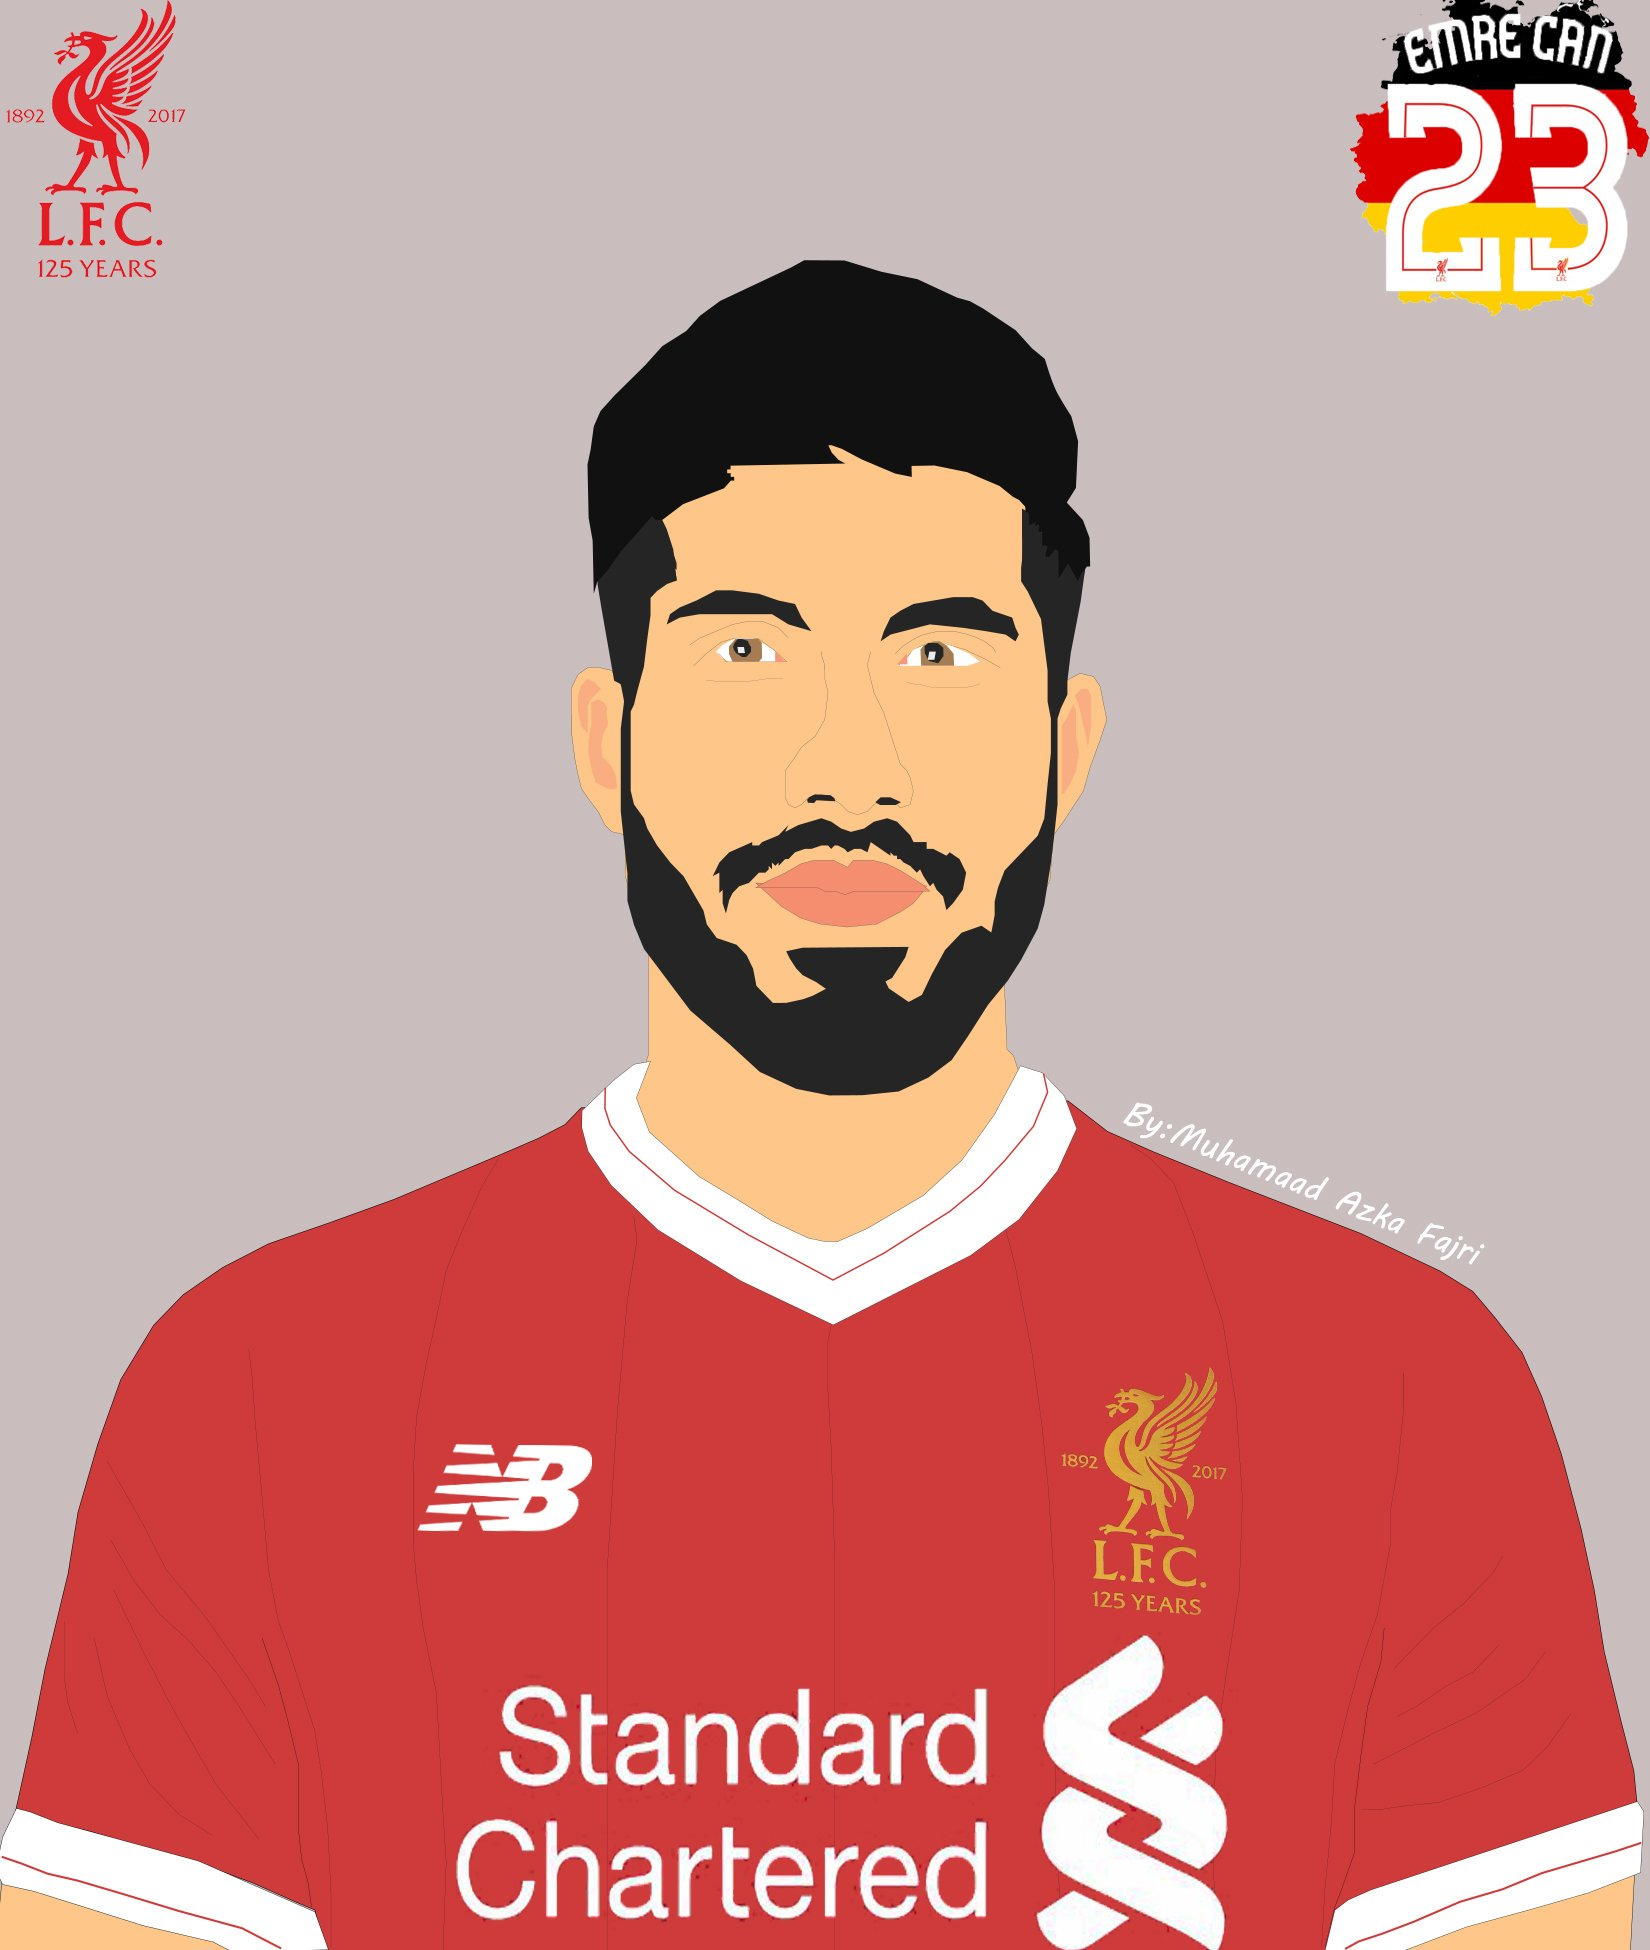 Hasil karya,Happy Birthday Emre Can!